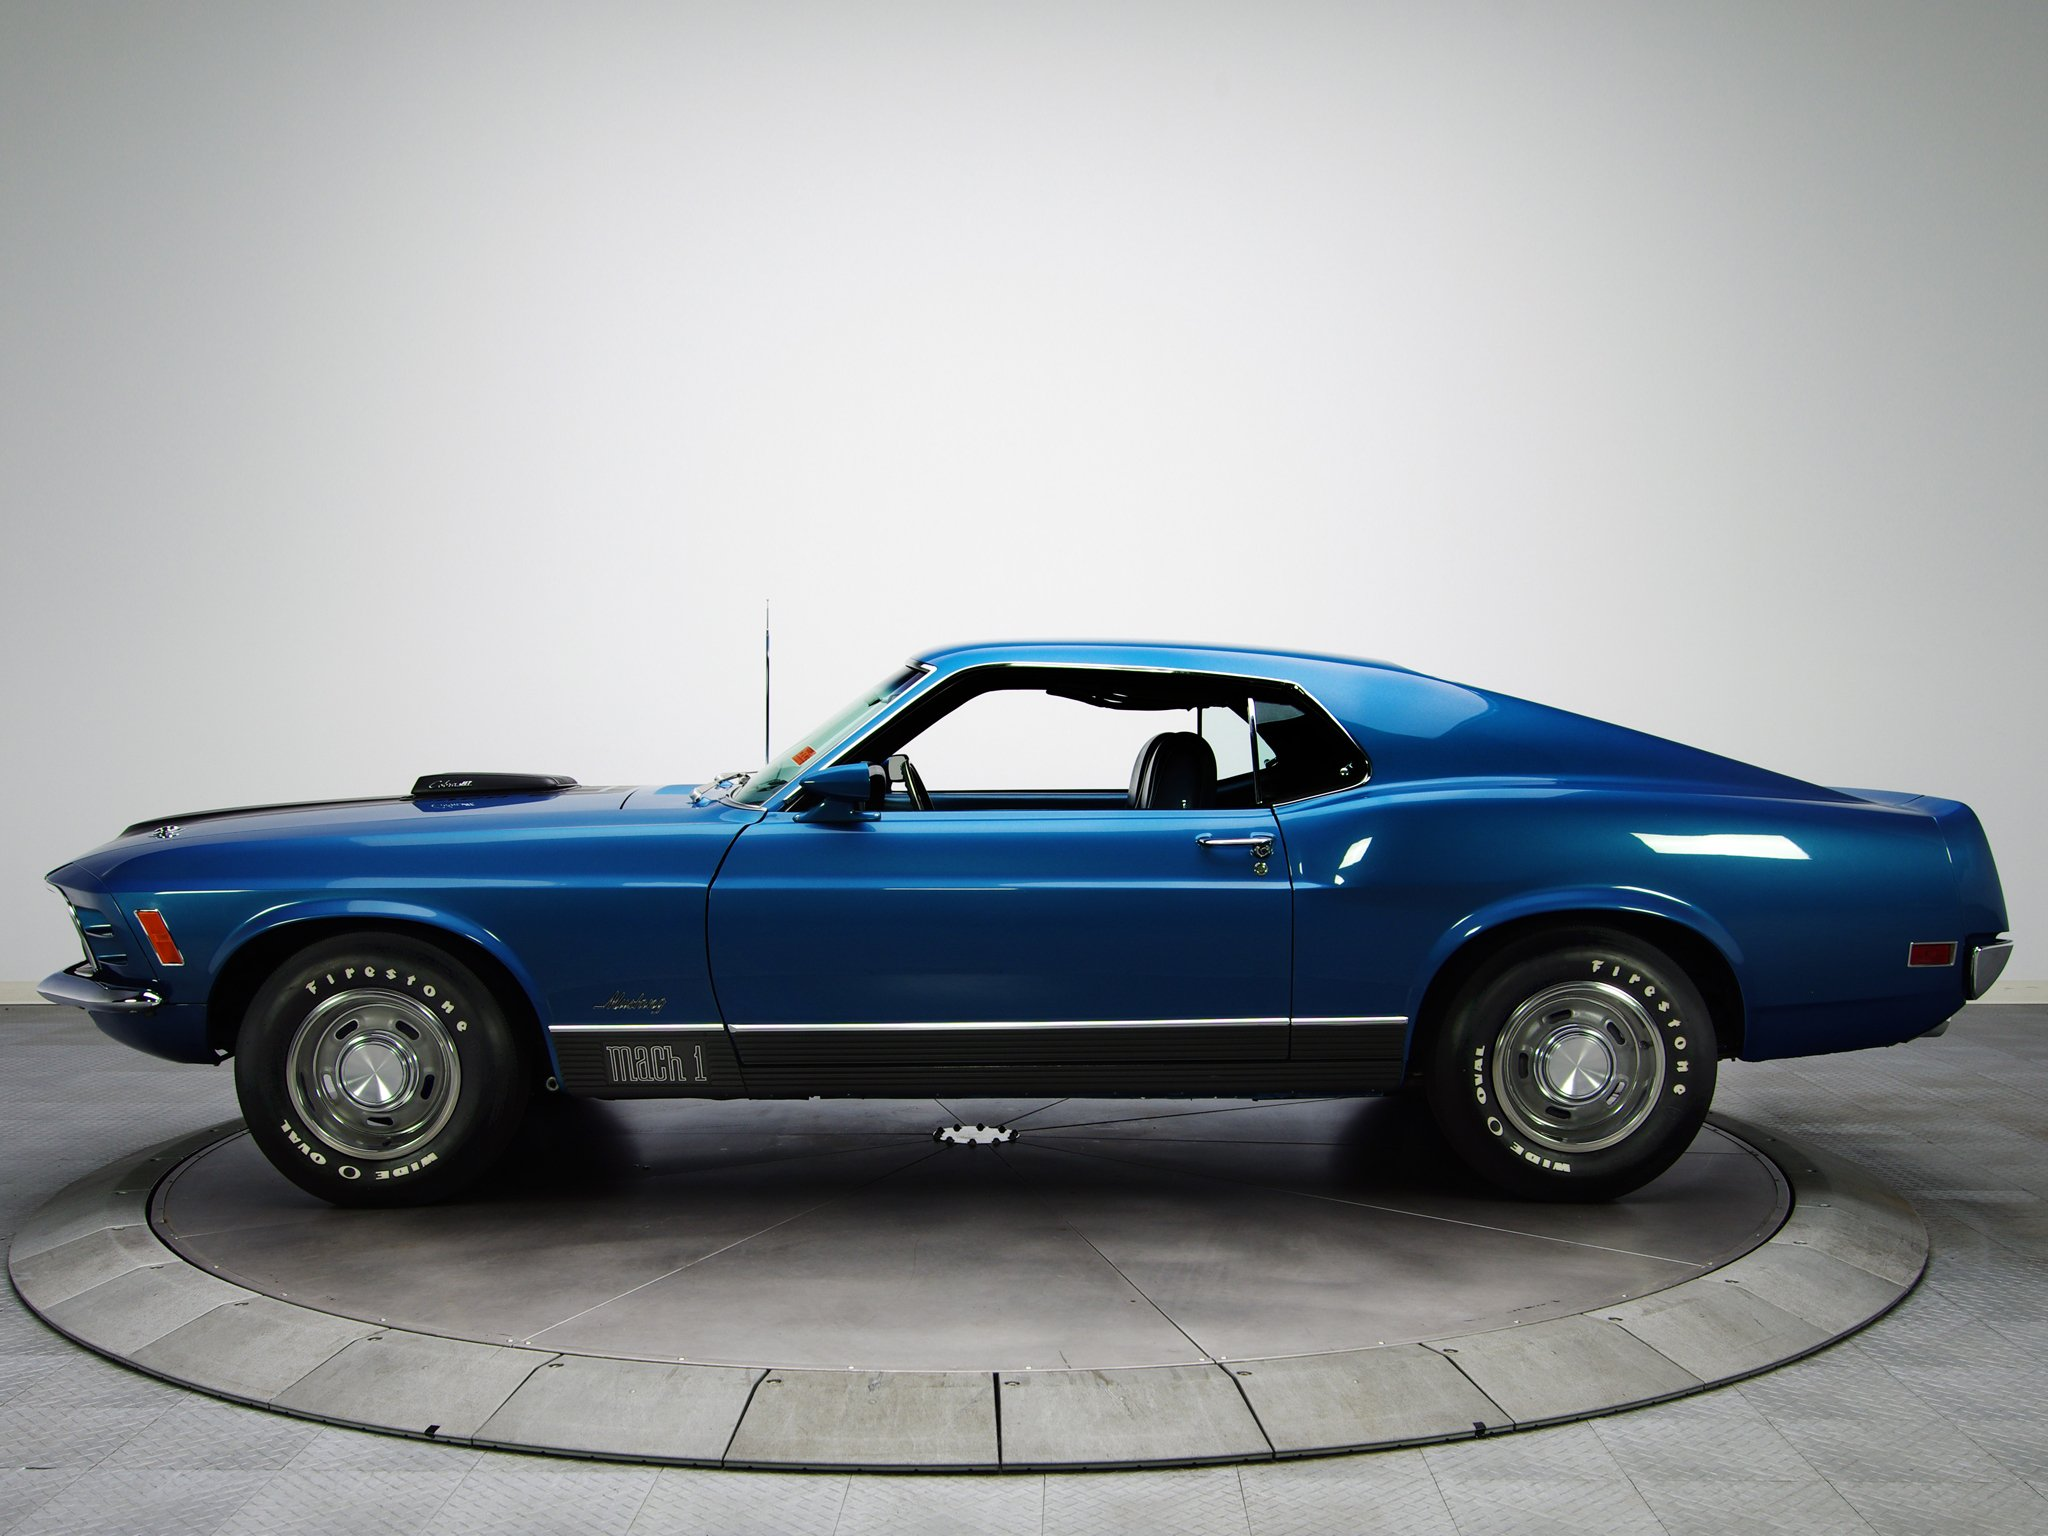 Ford Cobra Jet >> 1970 Ford Mustang Mach-1 428 Super Cobra Jet muscle classic d wallpaper | 2048x1536 | 245144 ...